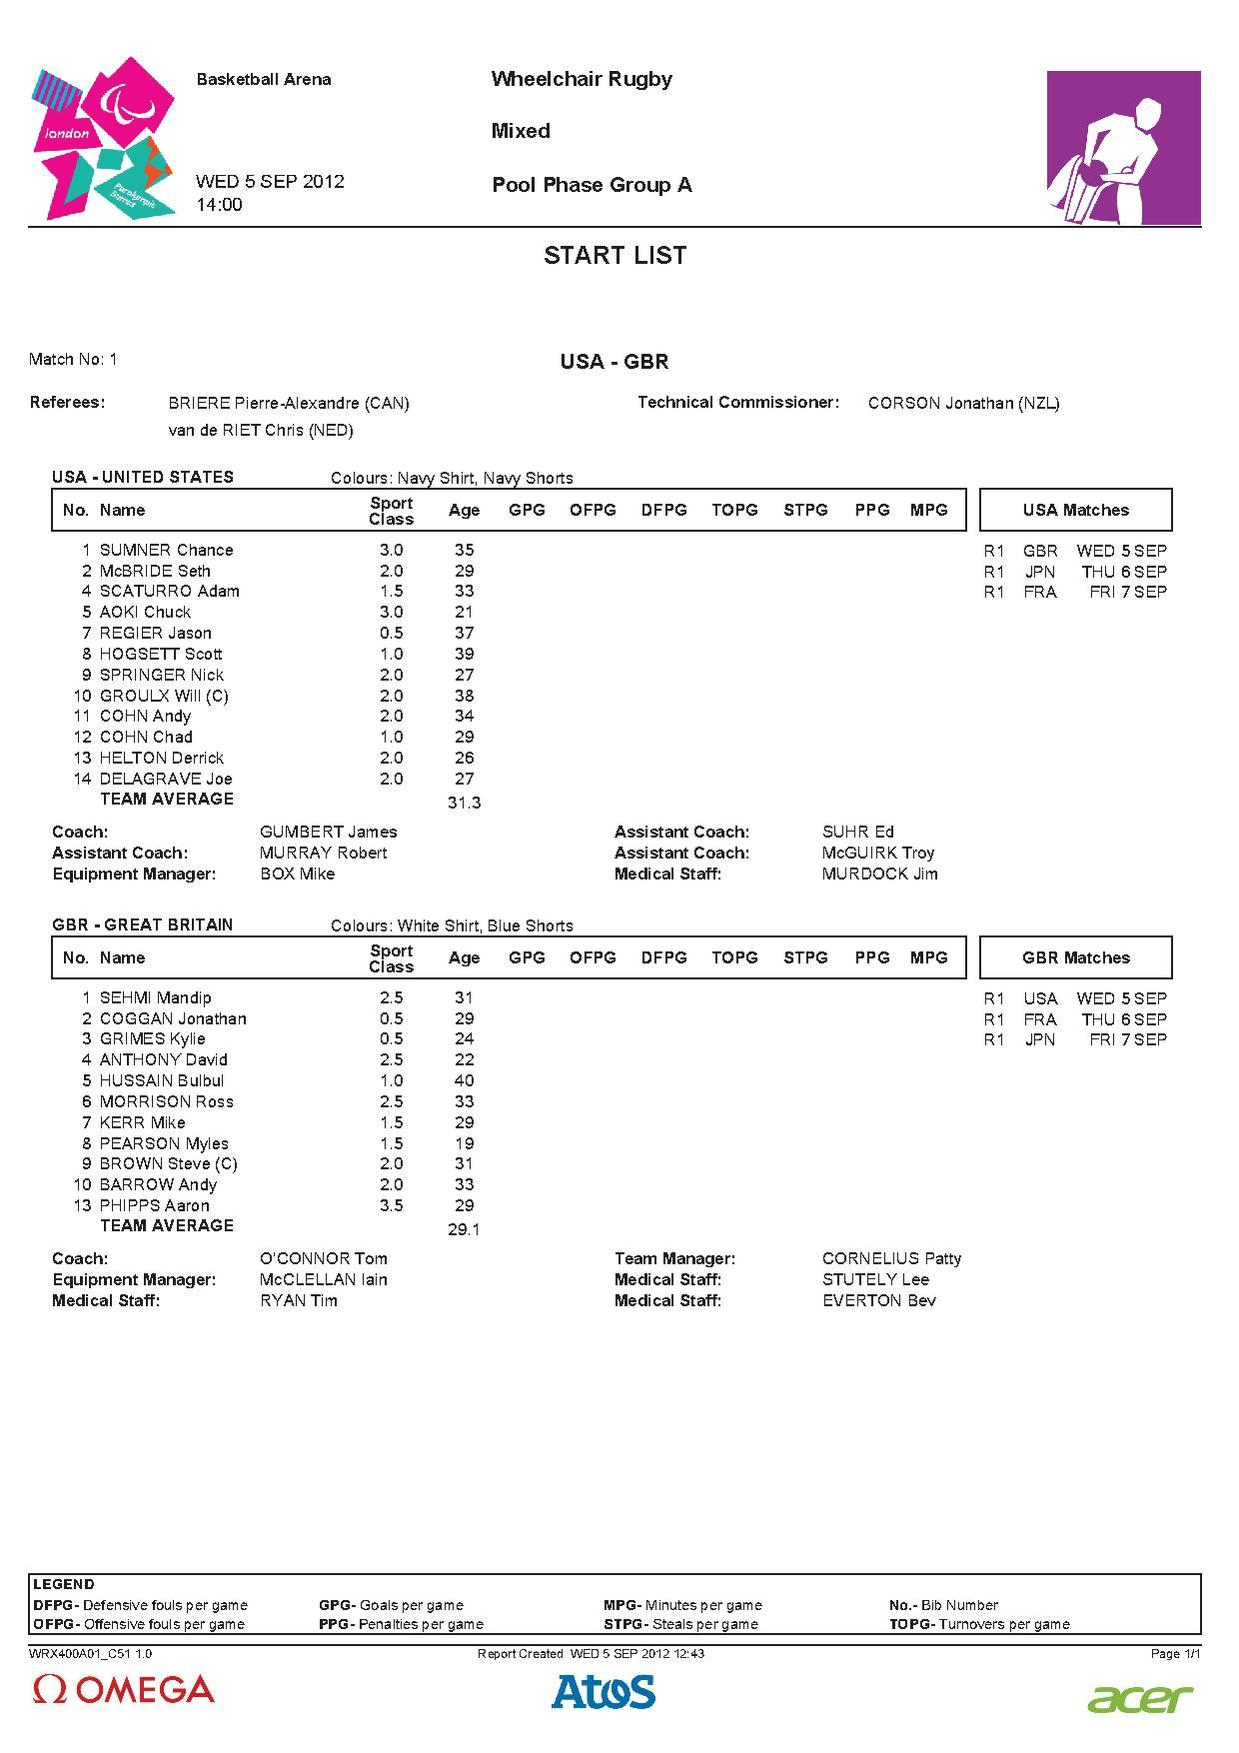 Pool Phase Group A USA v GB.pdf